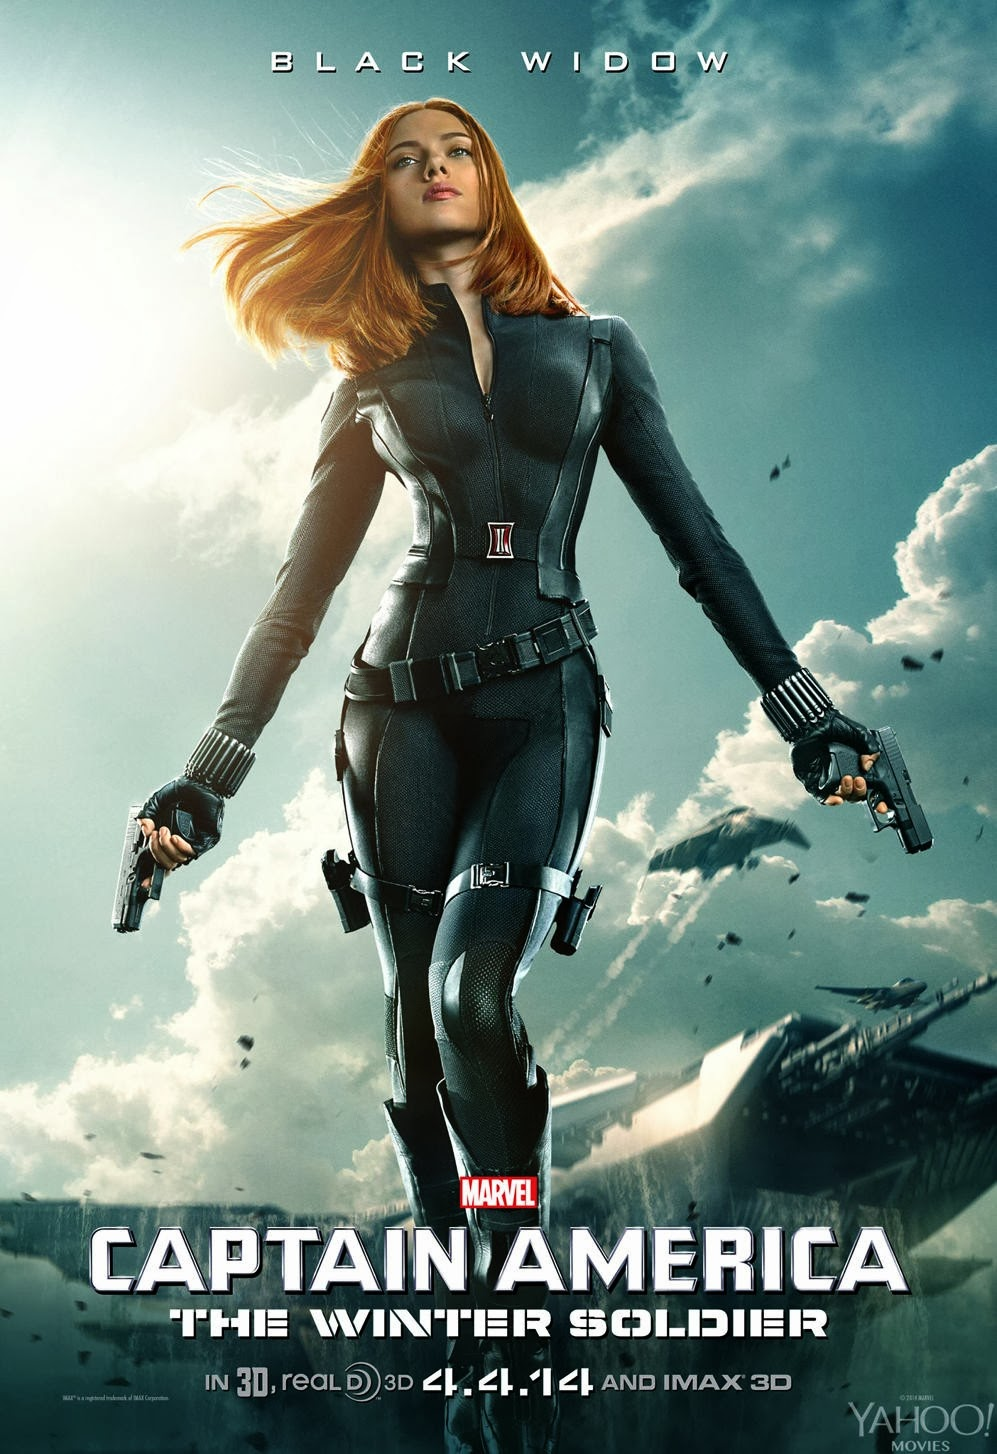 Captain America: The Winter Soldier Teaser Character Movie Poster Set - Scarlett Johansson as Black Widow